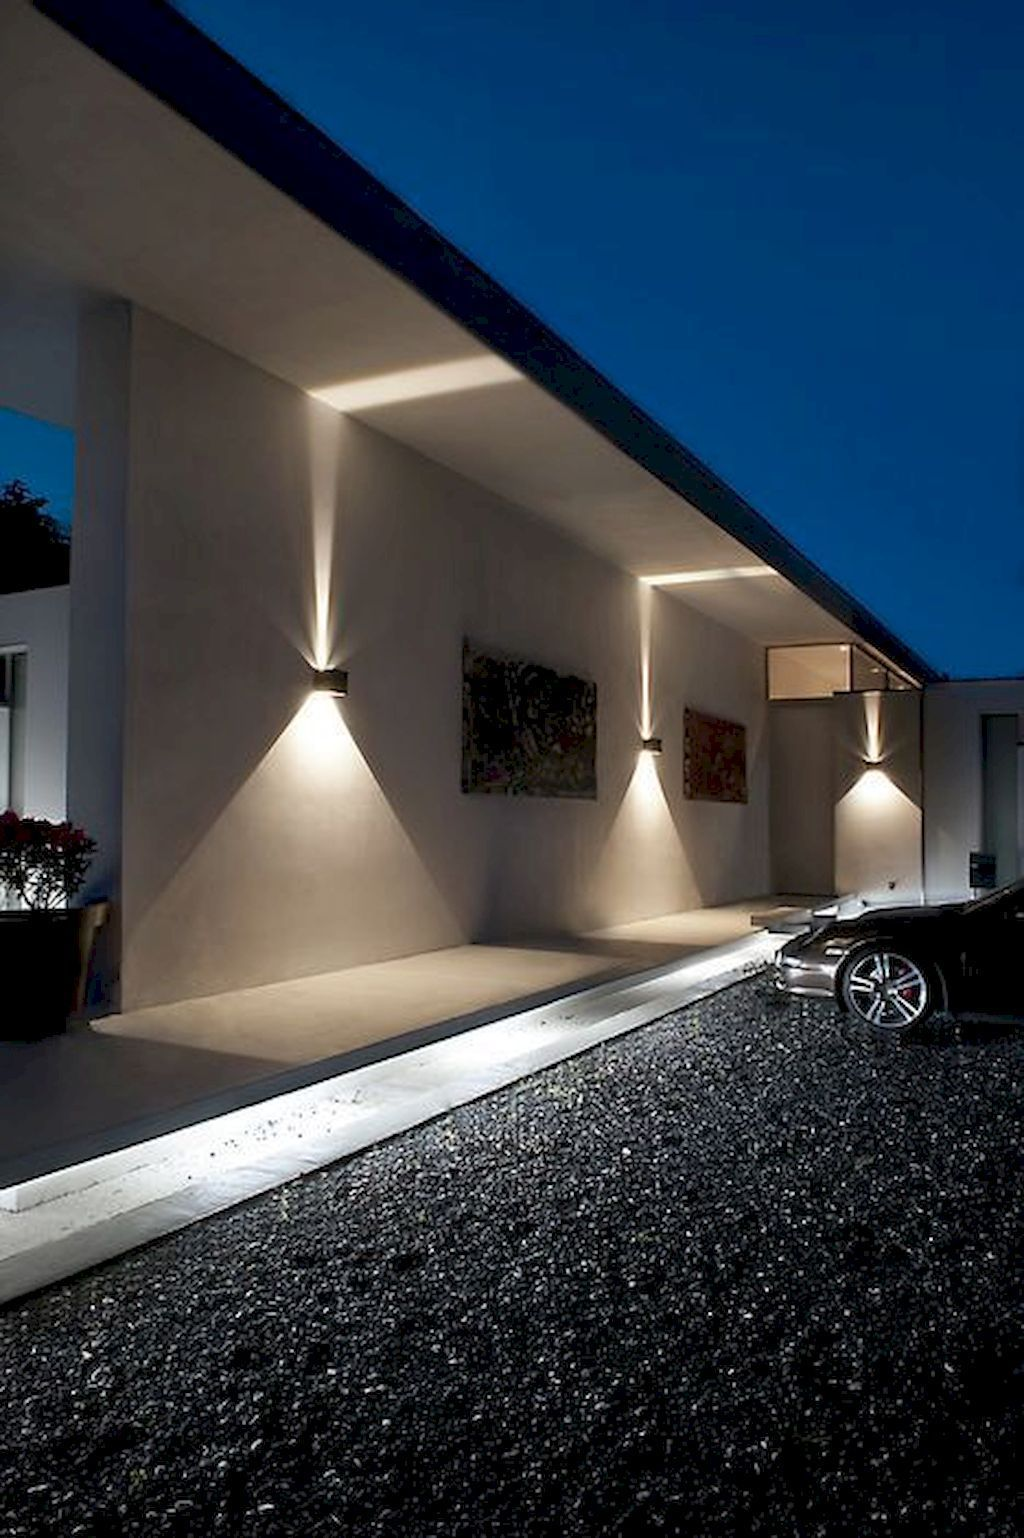 Patio Lighting Ideas One Important Part Of Your Home Is The Lighting On Your Terrace Th Outdoor Lighting Design Modern Outdoor Lighting Led Exterior Lighting